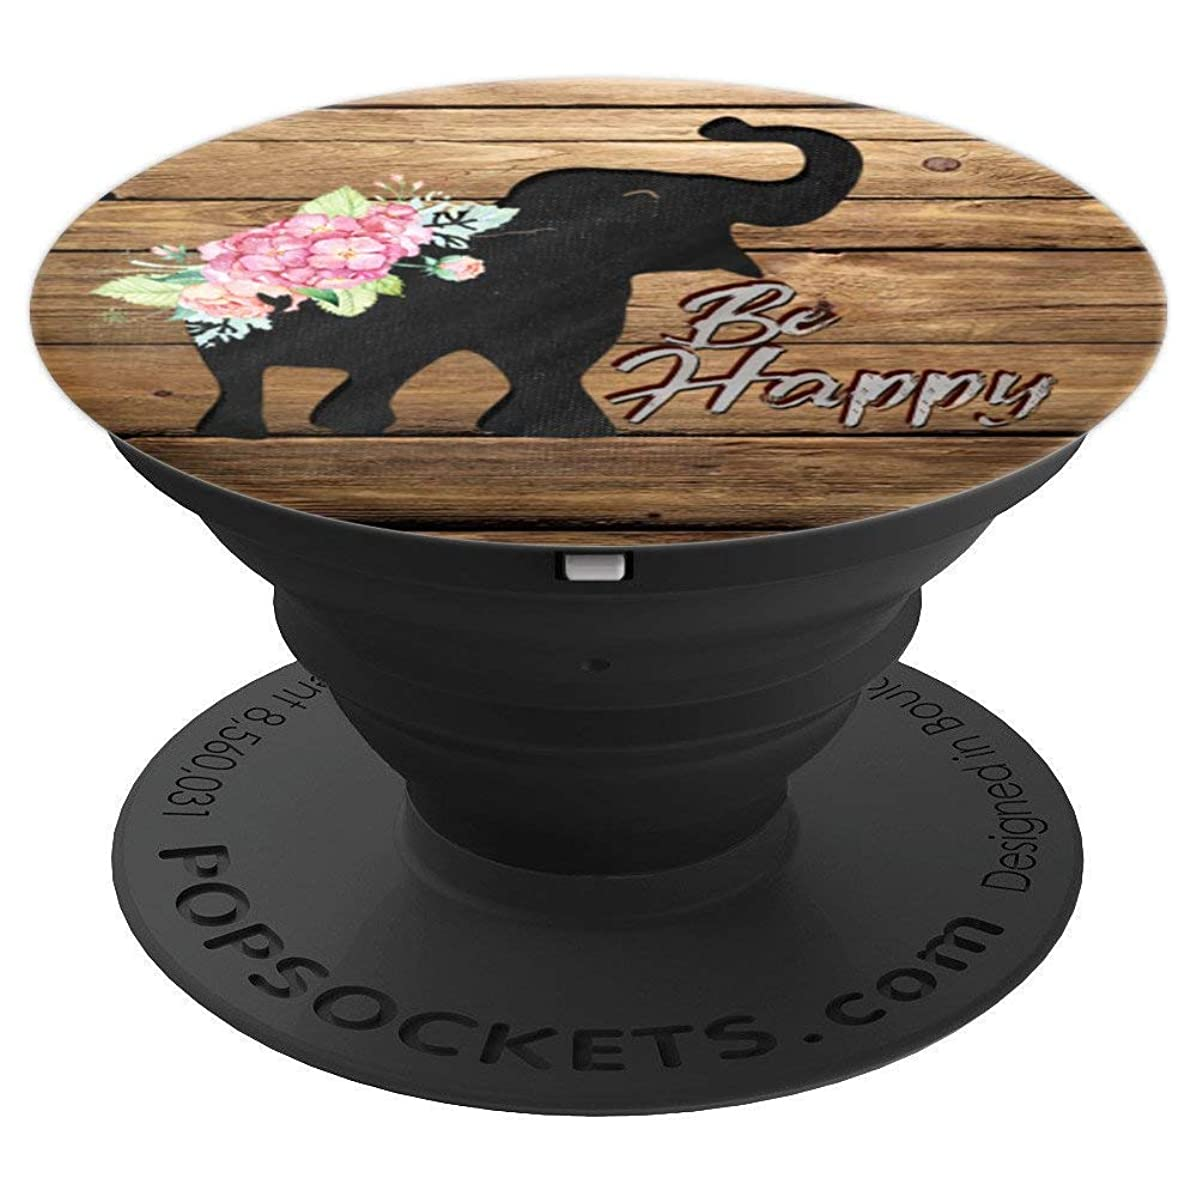 Optimistic Elephant Pop socket Wooden Floral Wood Grain Gift - PopSockets Grip and Stand for Phones and Tablets